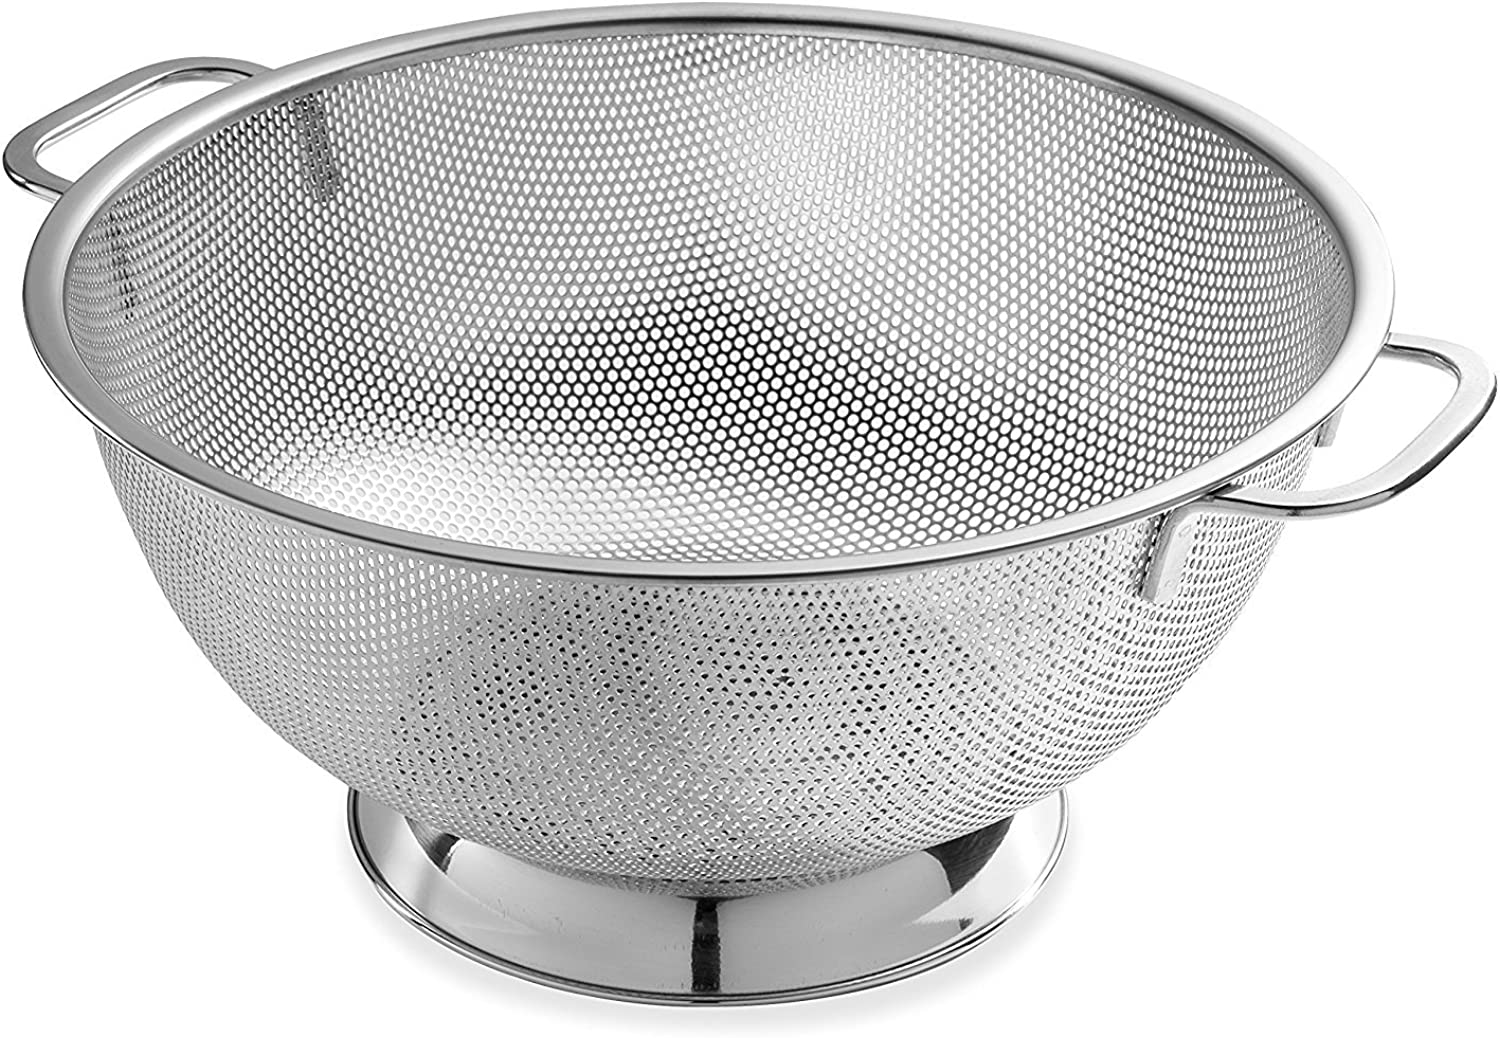 Bellemain Micro-perforated Micro-perforated Micro-perforated Stainless Steel 4.7l Colander-Dishwasher Safe B00O97D0DO 50f75d